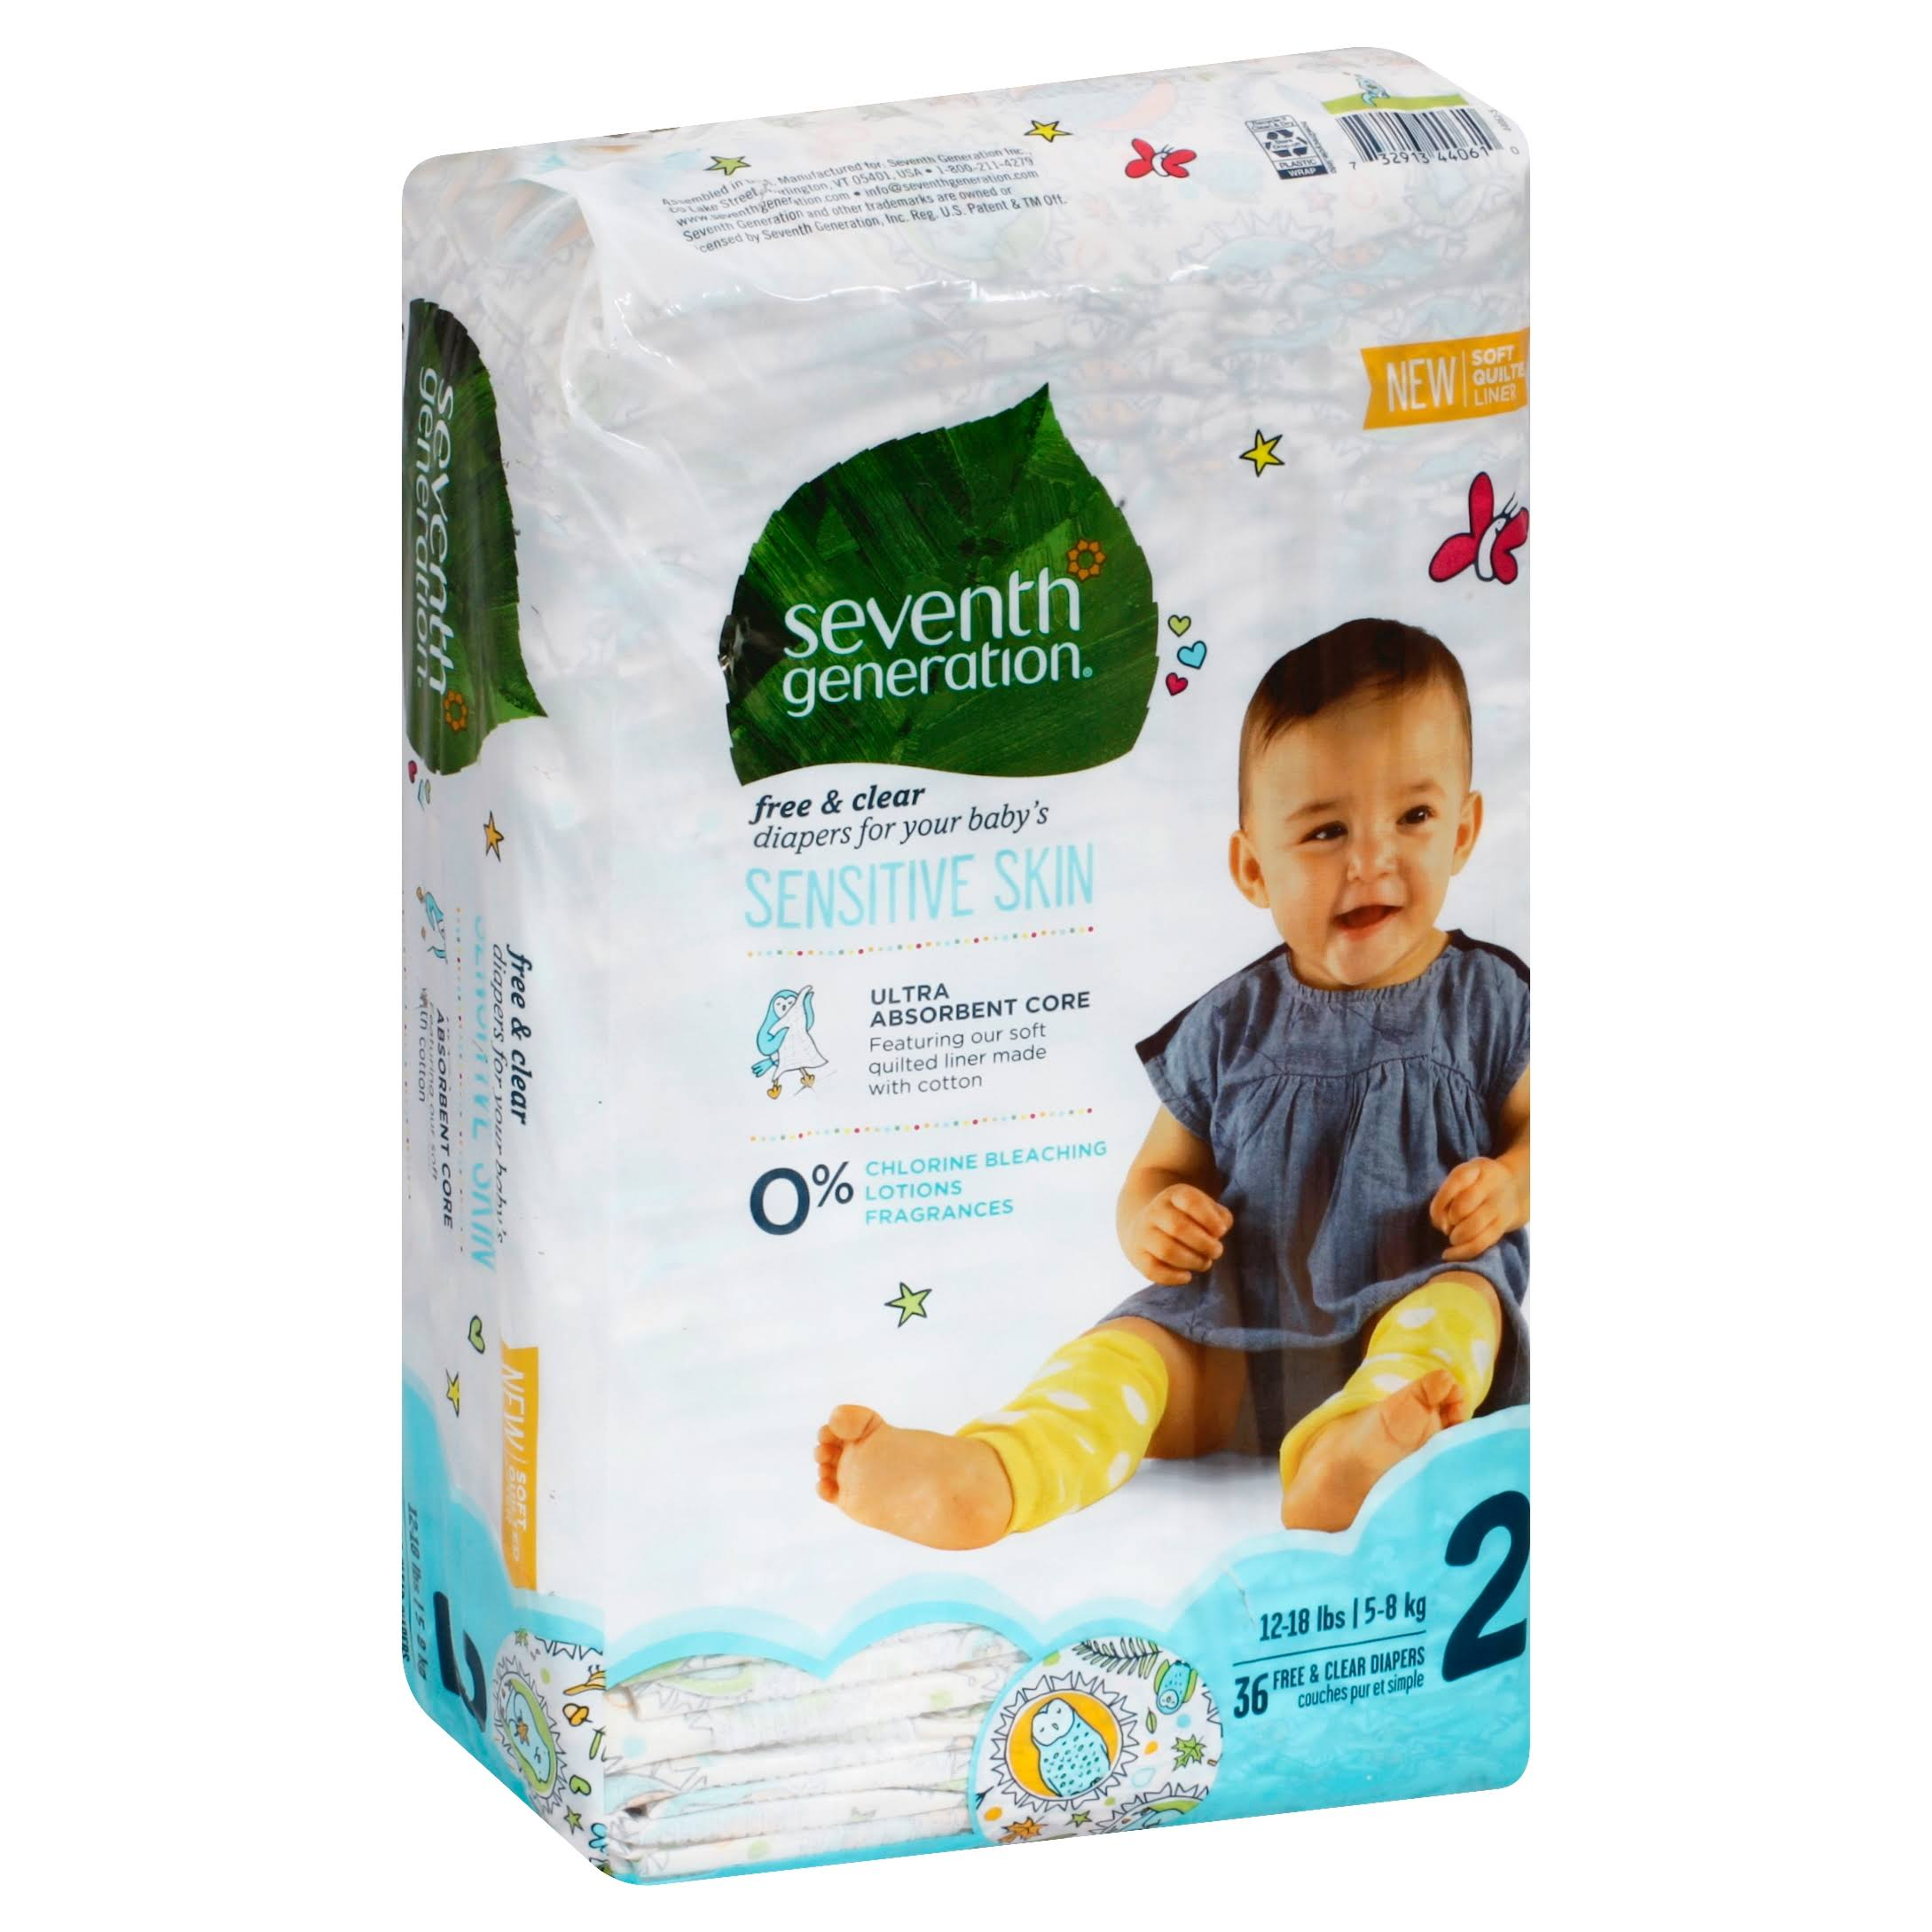 Seventh Generation Free & Clear Nappies - Size 2, x36